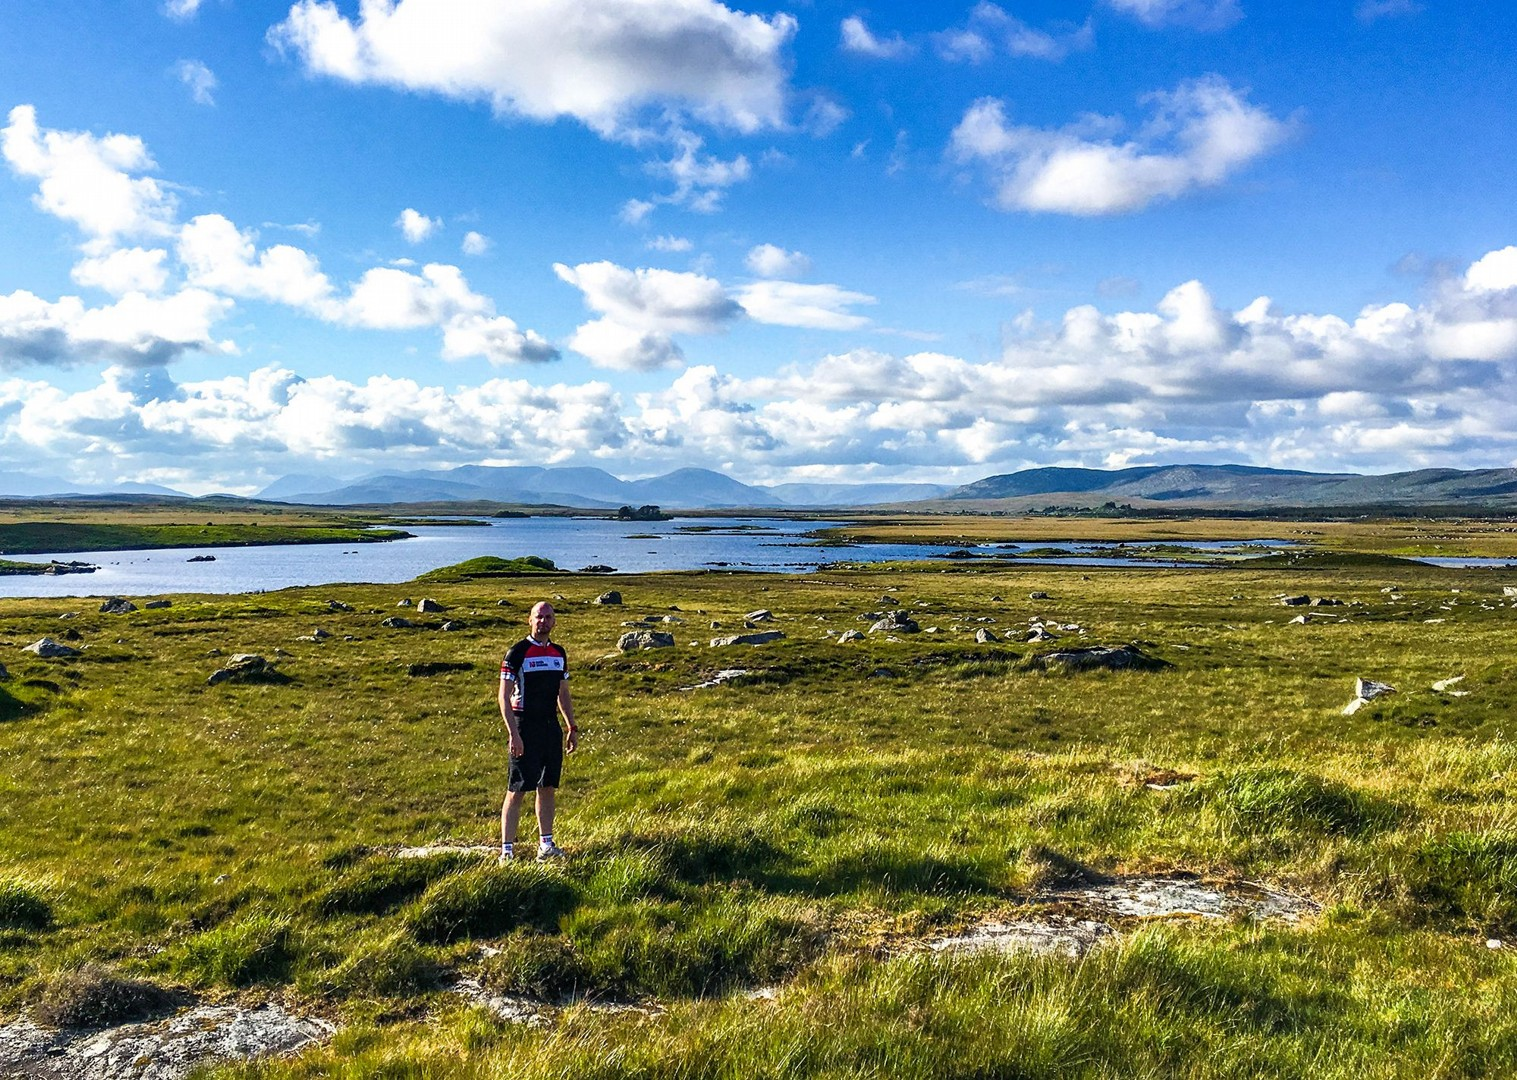 saddle-skedaddle-holidays-in-ireland-self-guided-leisure-cycling.jpg - NEW! Ireland - Connemara and the Aran Isles - Leisure Cycling